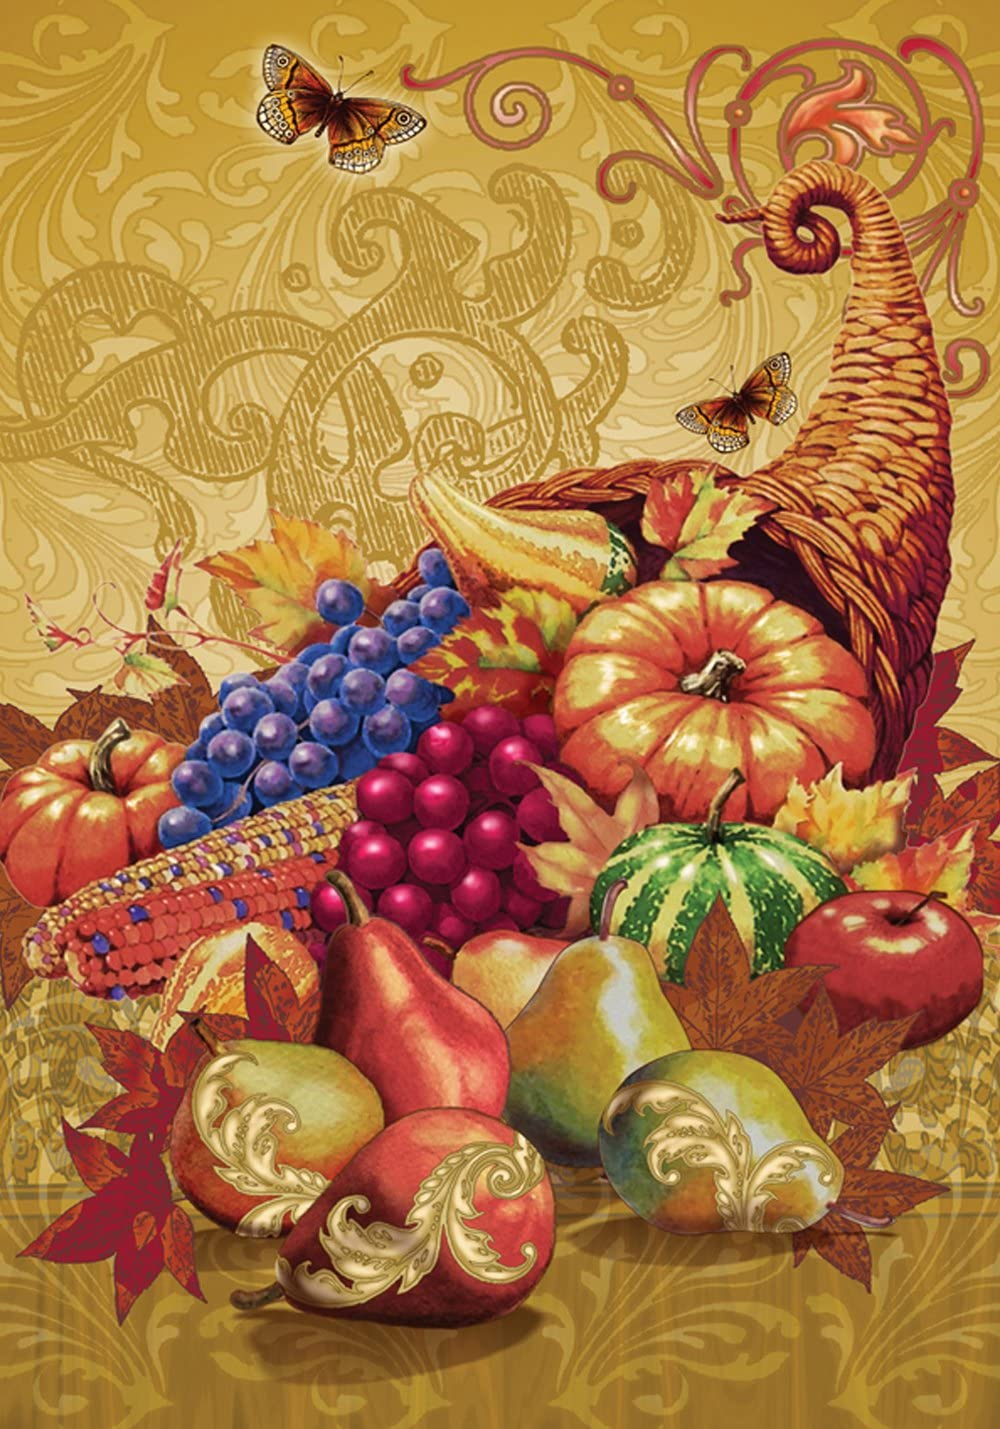 Toland Home Garden Mountain of Thanks 12.5 x 18 Inch Decorative Fall Autumn Cornucopia Harvest Thanksgiving Garden Flag